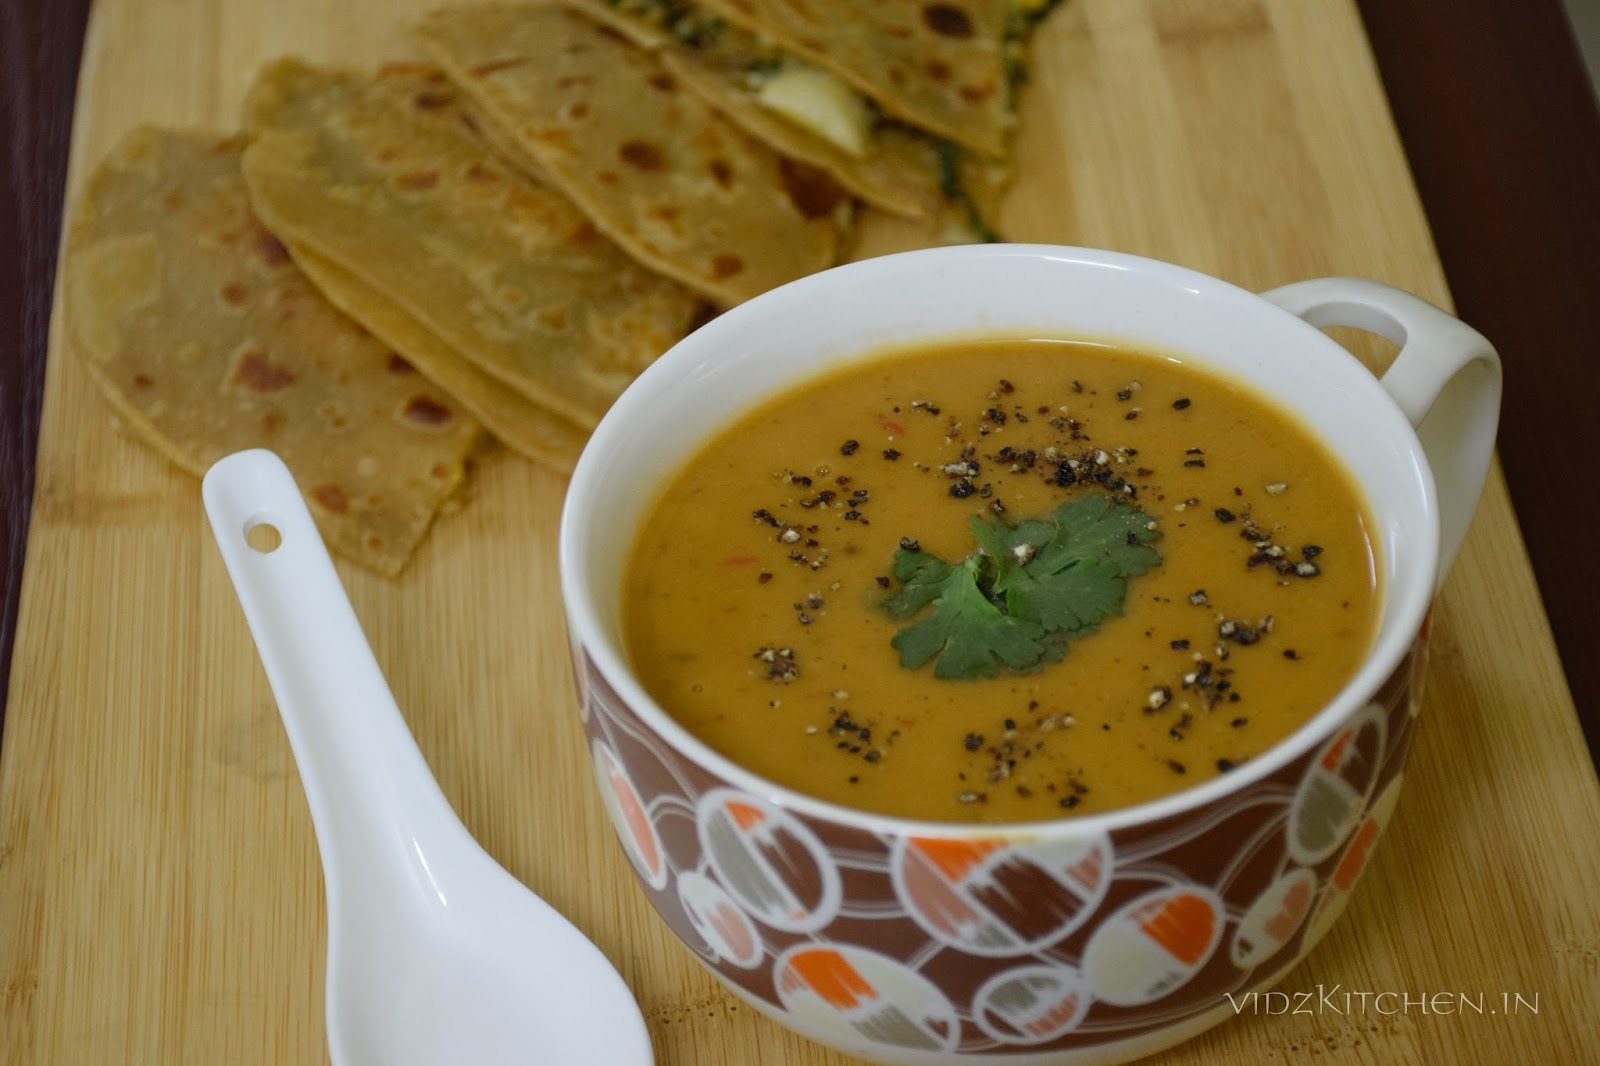 Moong and Carrot Soup